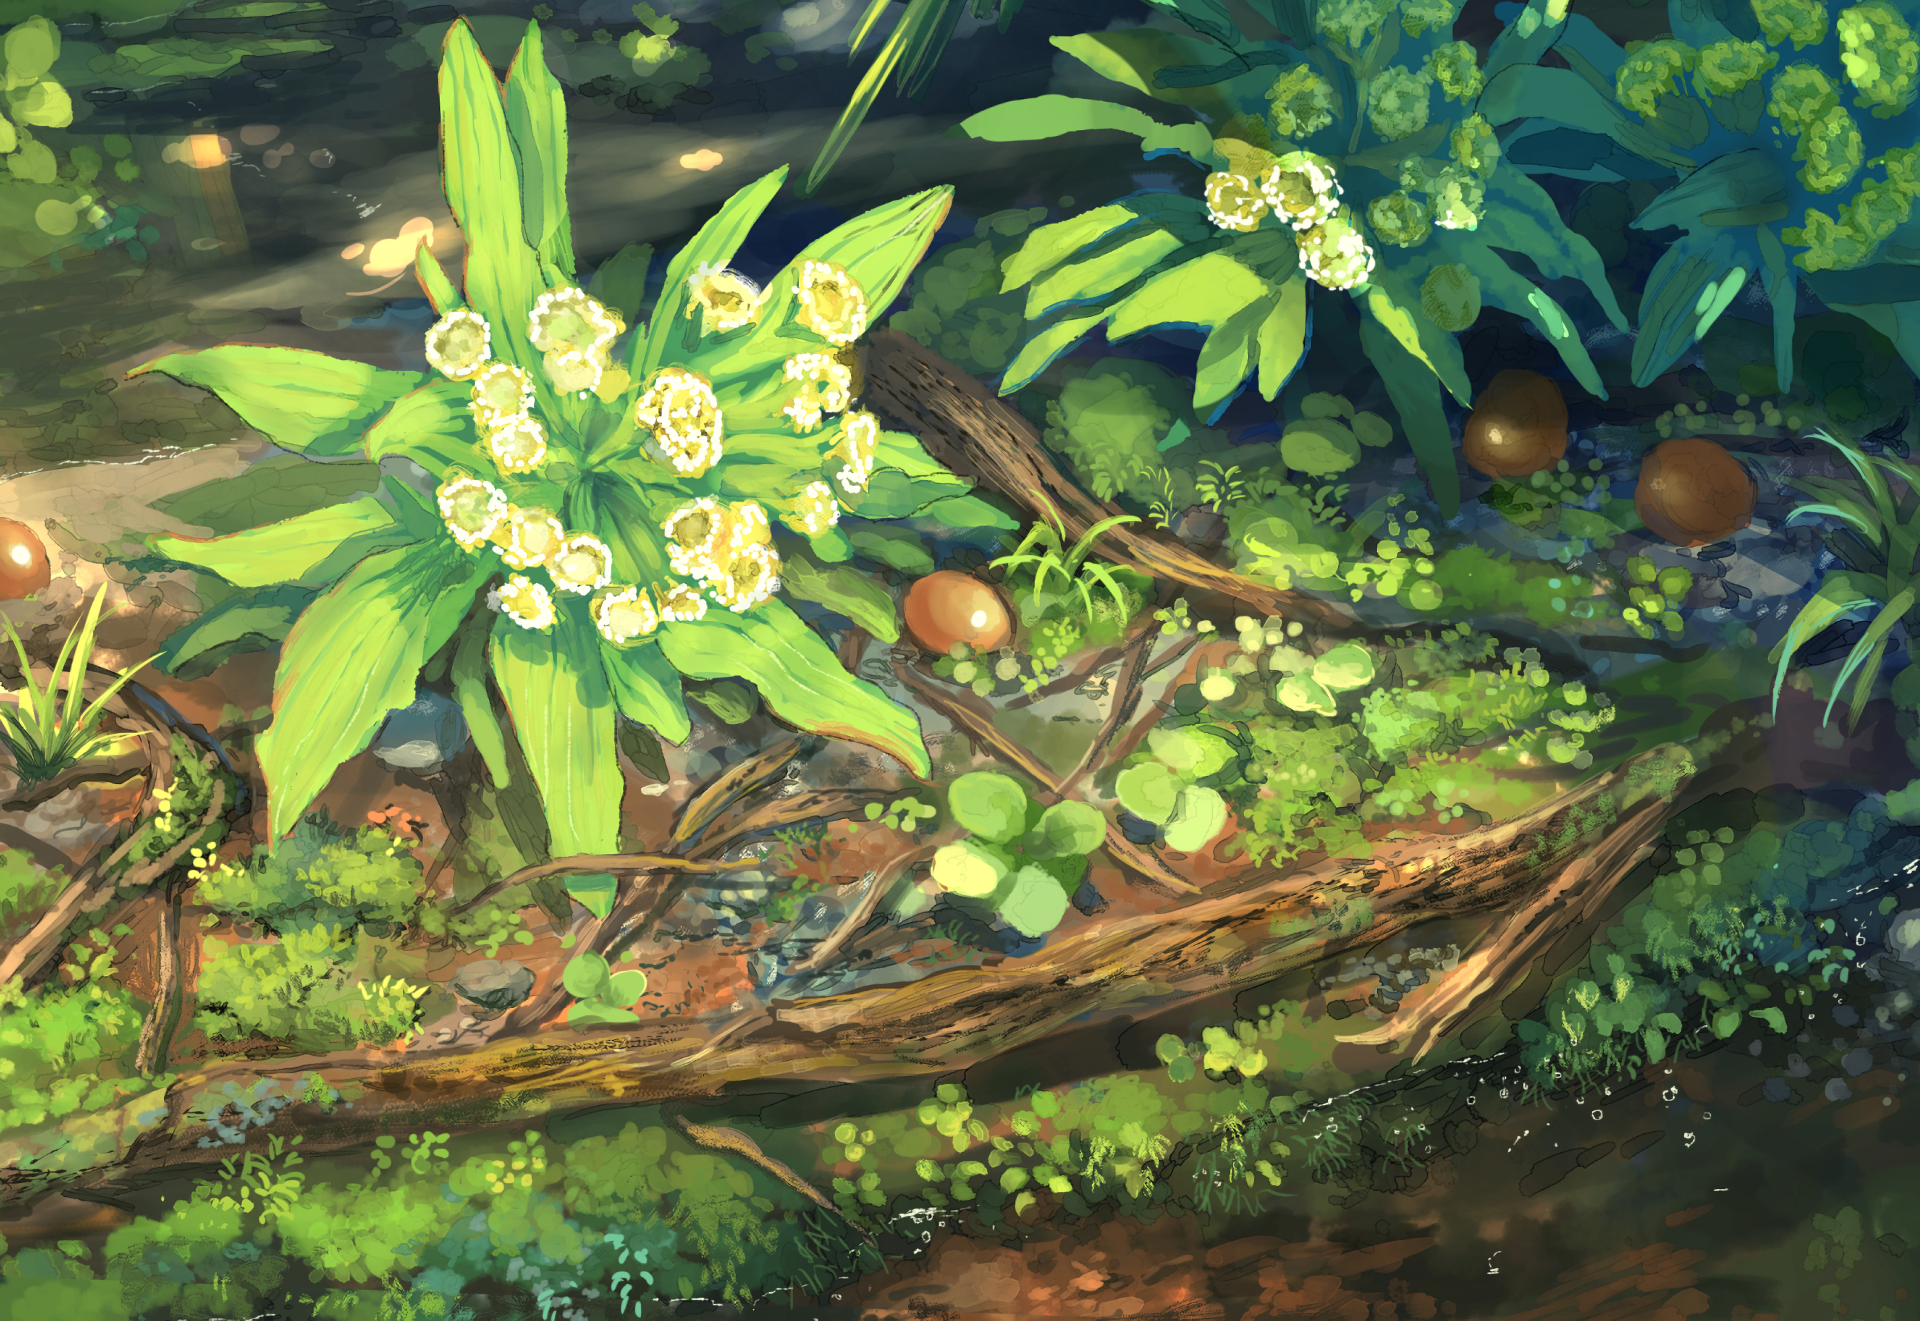 Anime - Original  Flower Plant Wallpaper